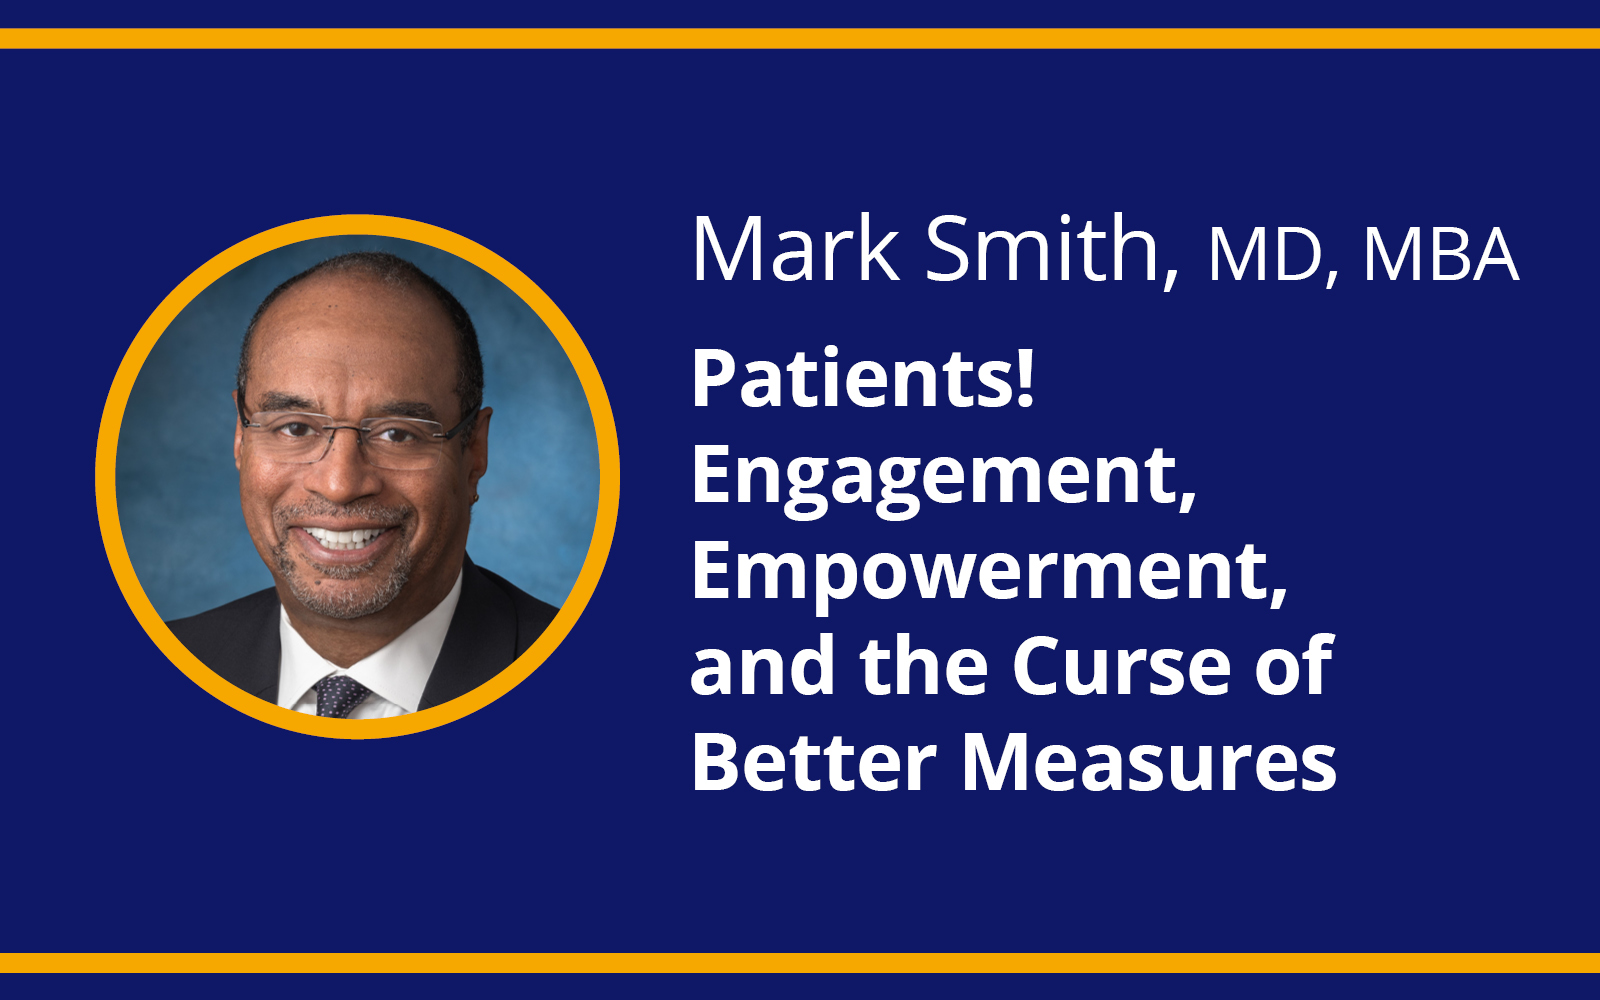 Mark Smith, MD, MBA, - Patients! Engagement, Empowerment, and the Curse of Better Measures